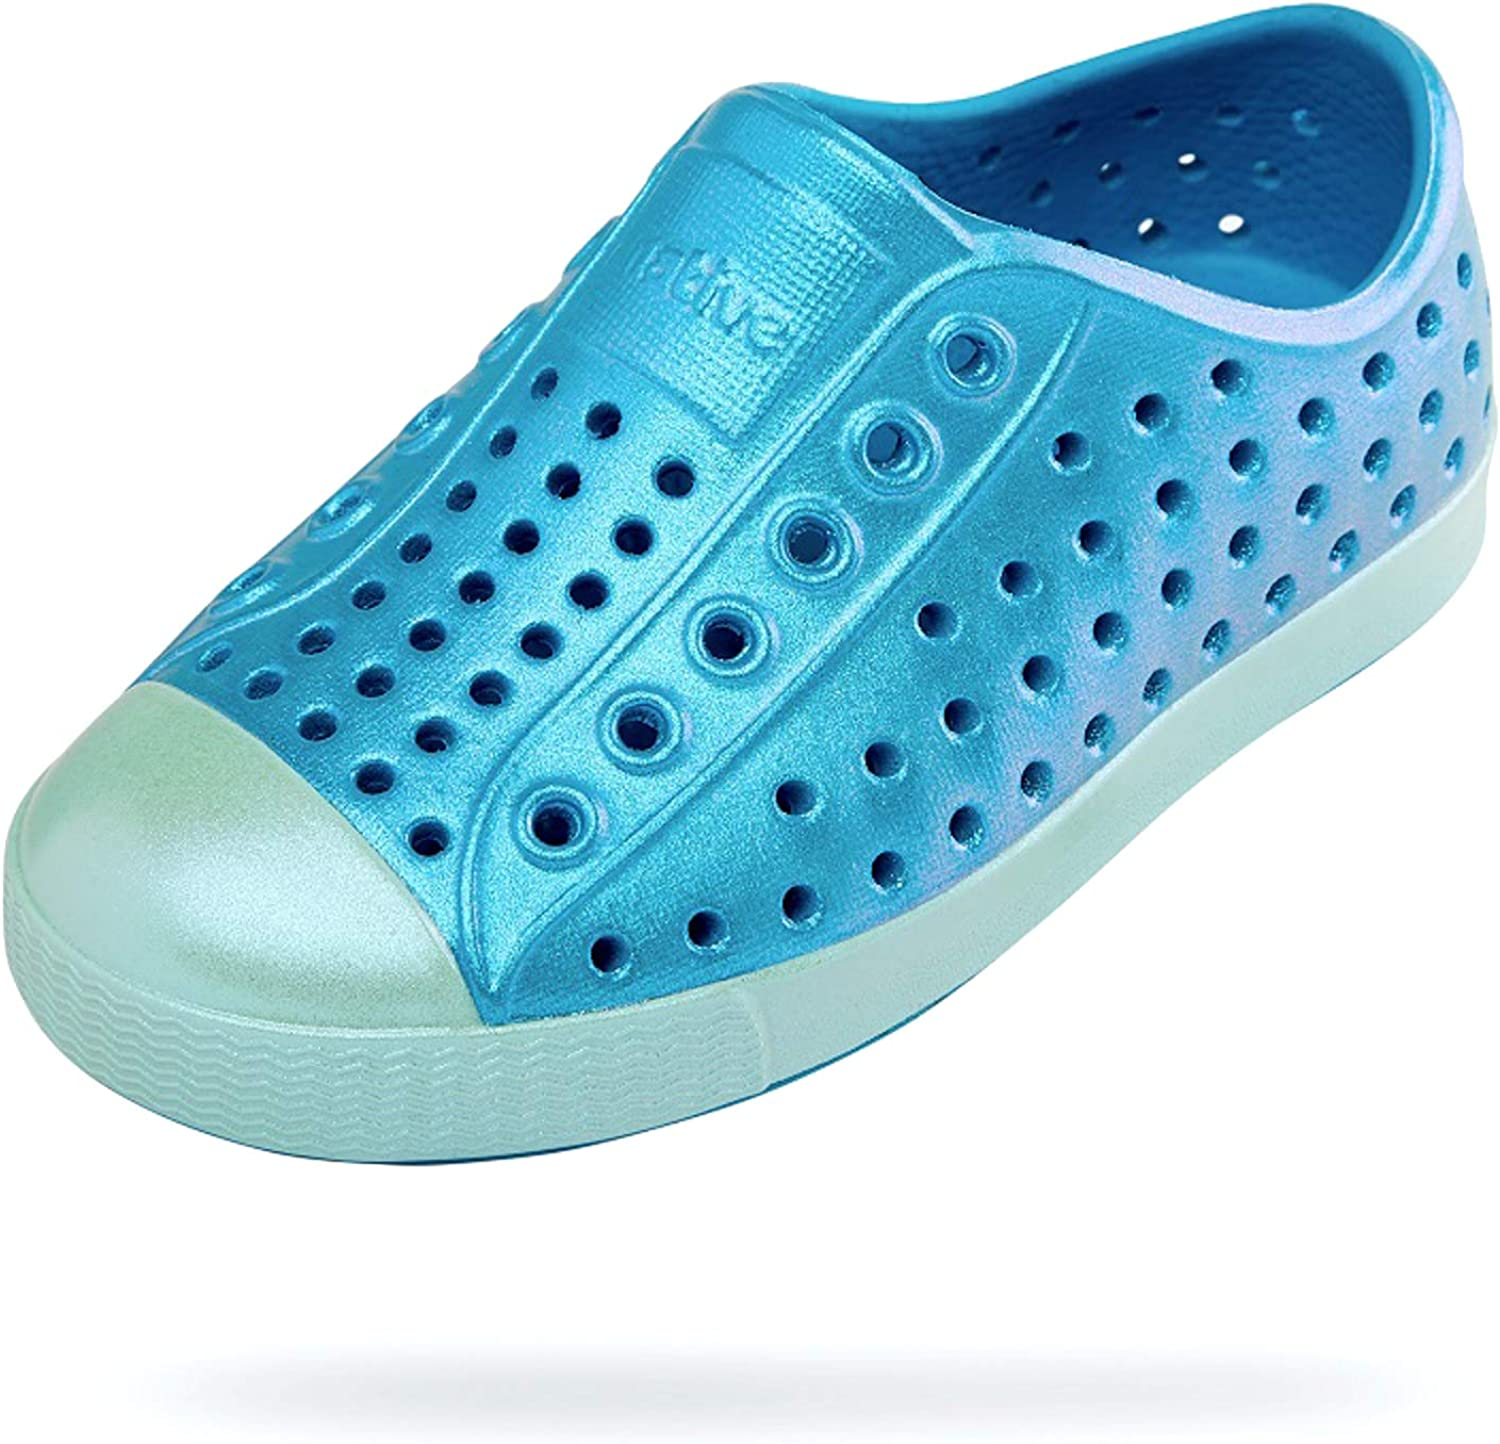 Native Sales for sale Shoes Jefferson Child Lightweight Max 50% OFF Kids Sneaker